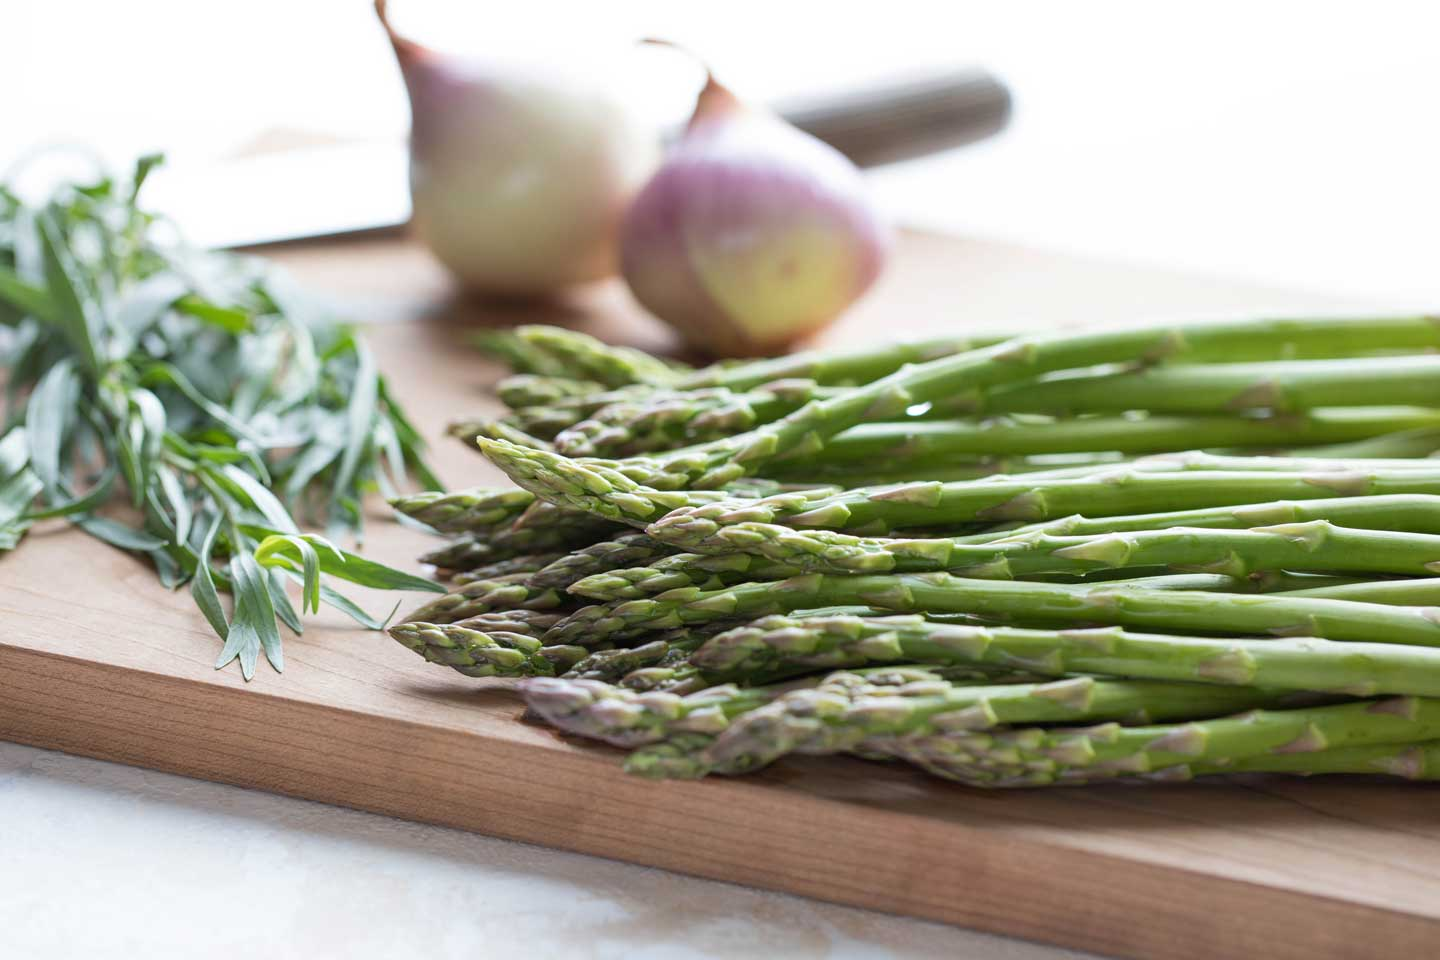 Besides whole wheat pasta, this recipe gets huge flavor boosts from shallots, lovely spring asparagus, and just a little hit of fresh tarragon. So much fresh, vibrant flavor packed into one pan!